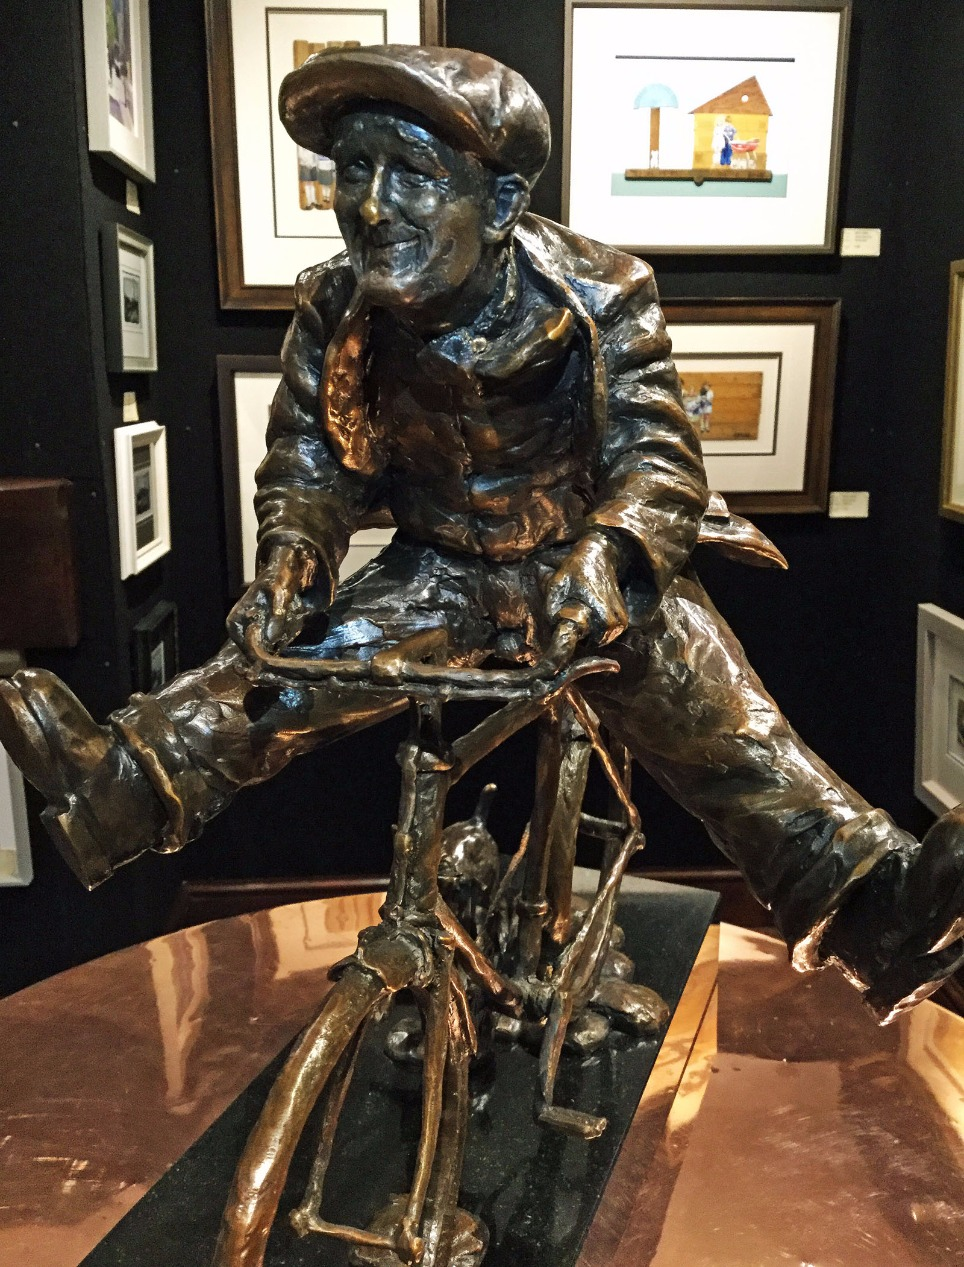 Wheeee! by Alexander Millar, Sculpture | Dog | Northern | Nostalgic | Gadgie